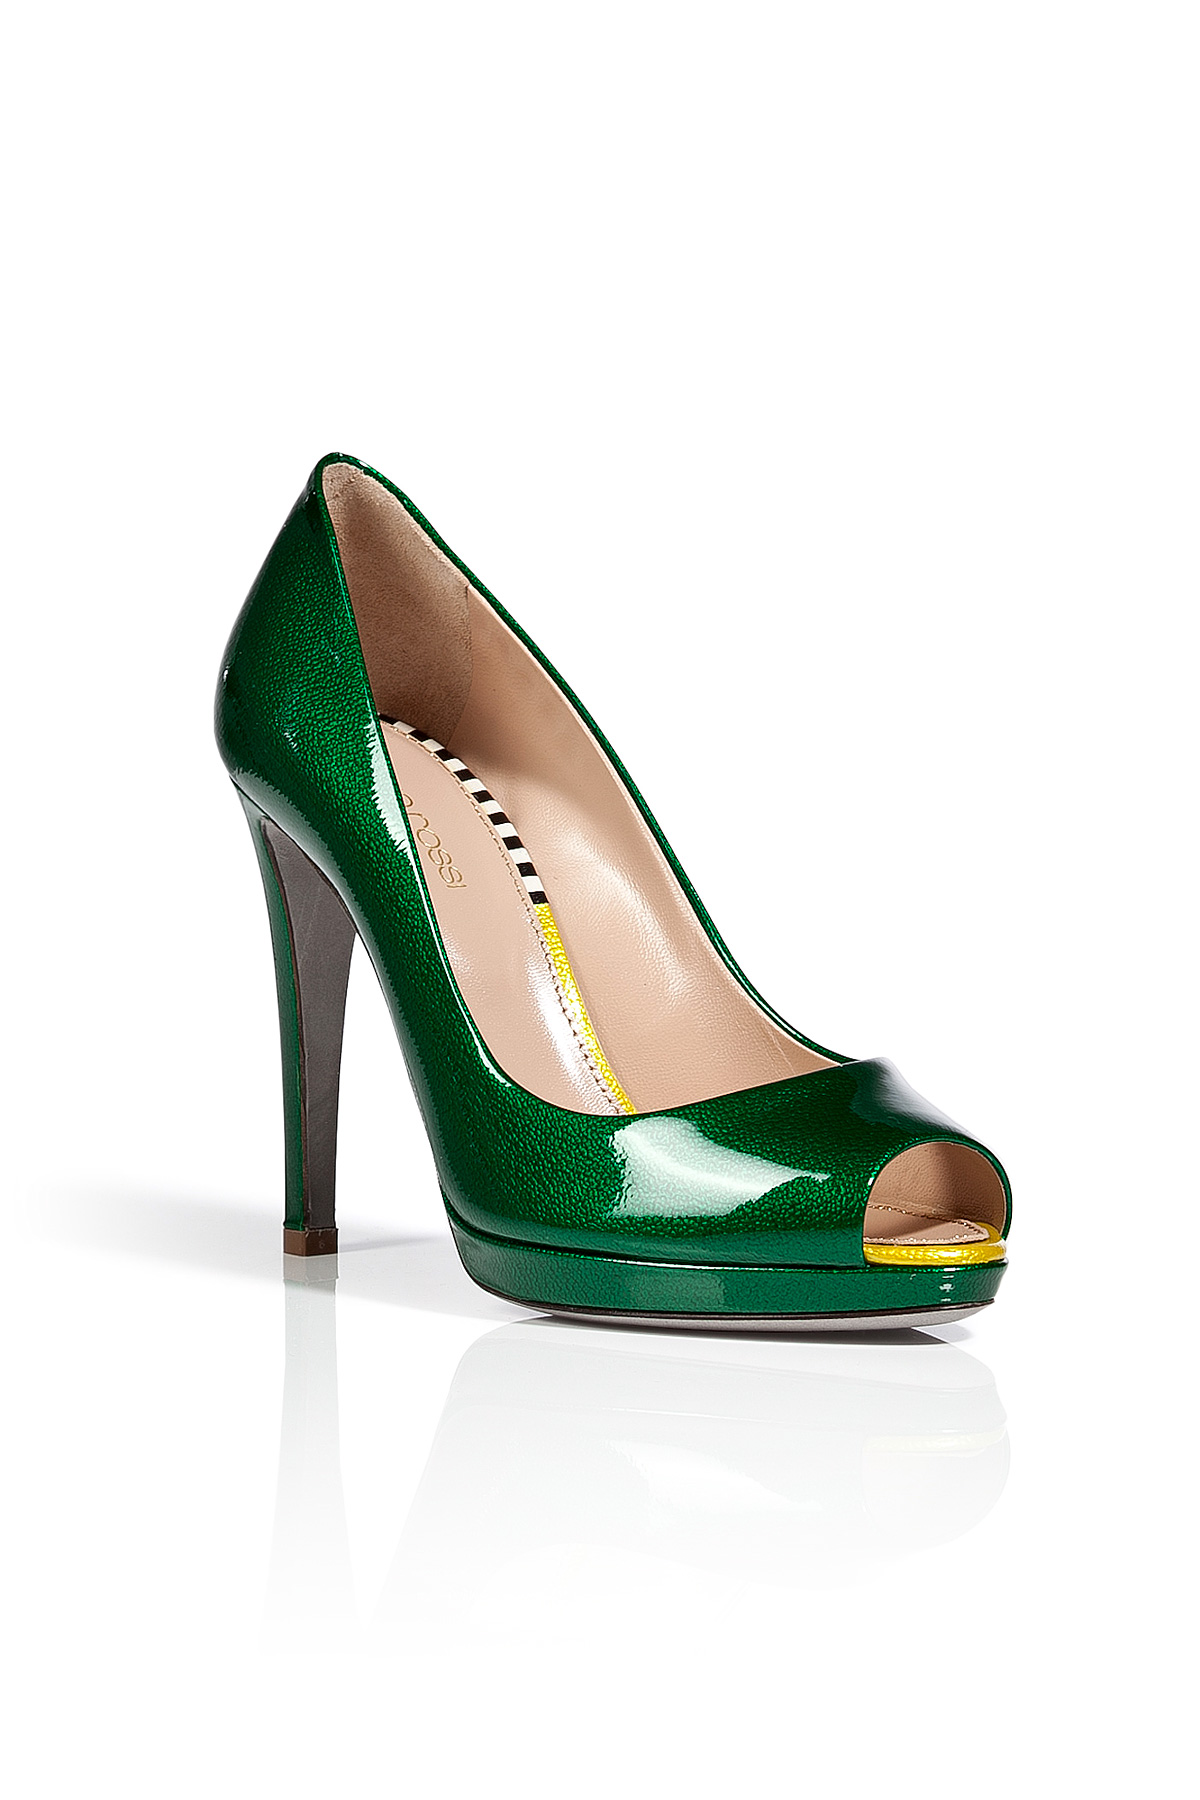 Sergio Rossi Grass Green Patent Leather Peep Toe Pumps In